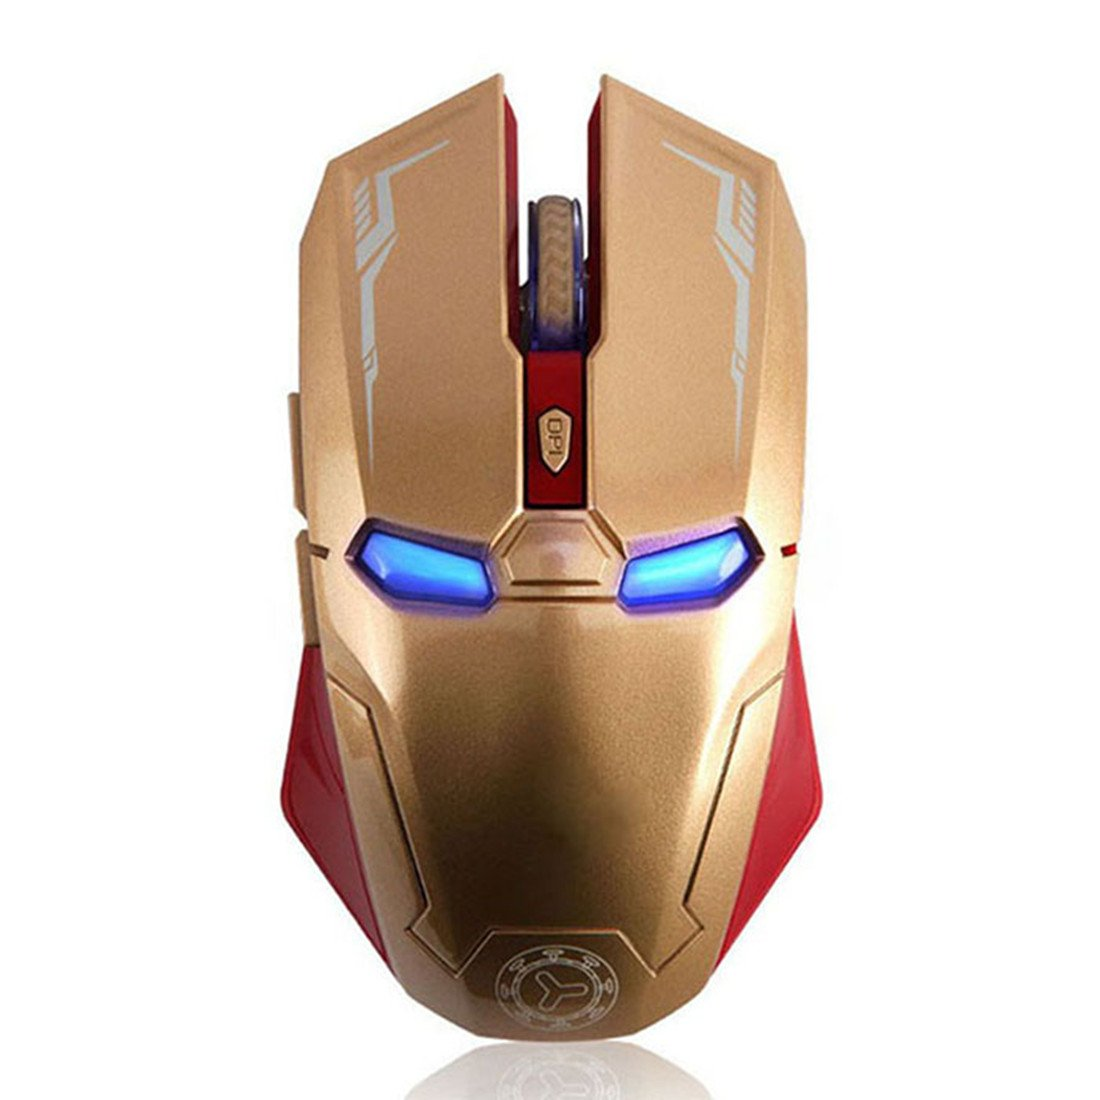 Taonology Iron Man Gaming Wireless Mouse with Silent Mute Button Click Micro Switches Adjustable for PC and Mac